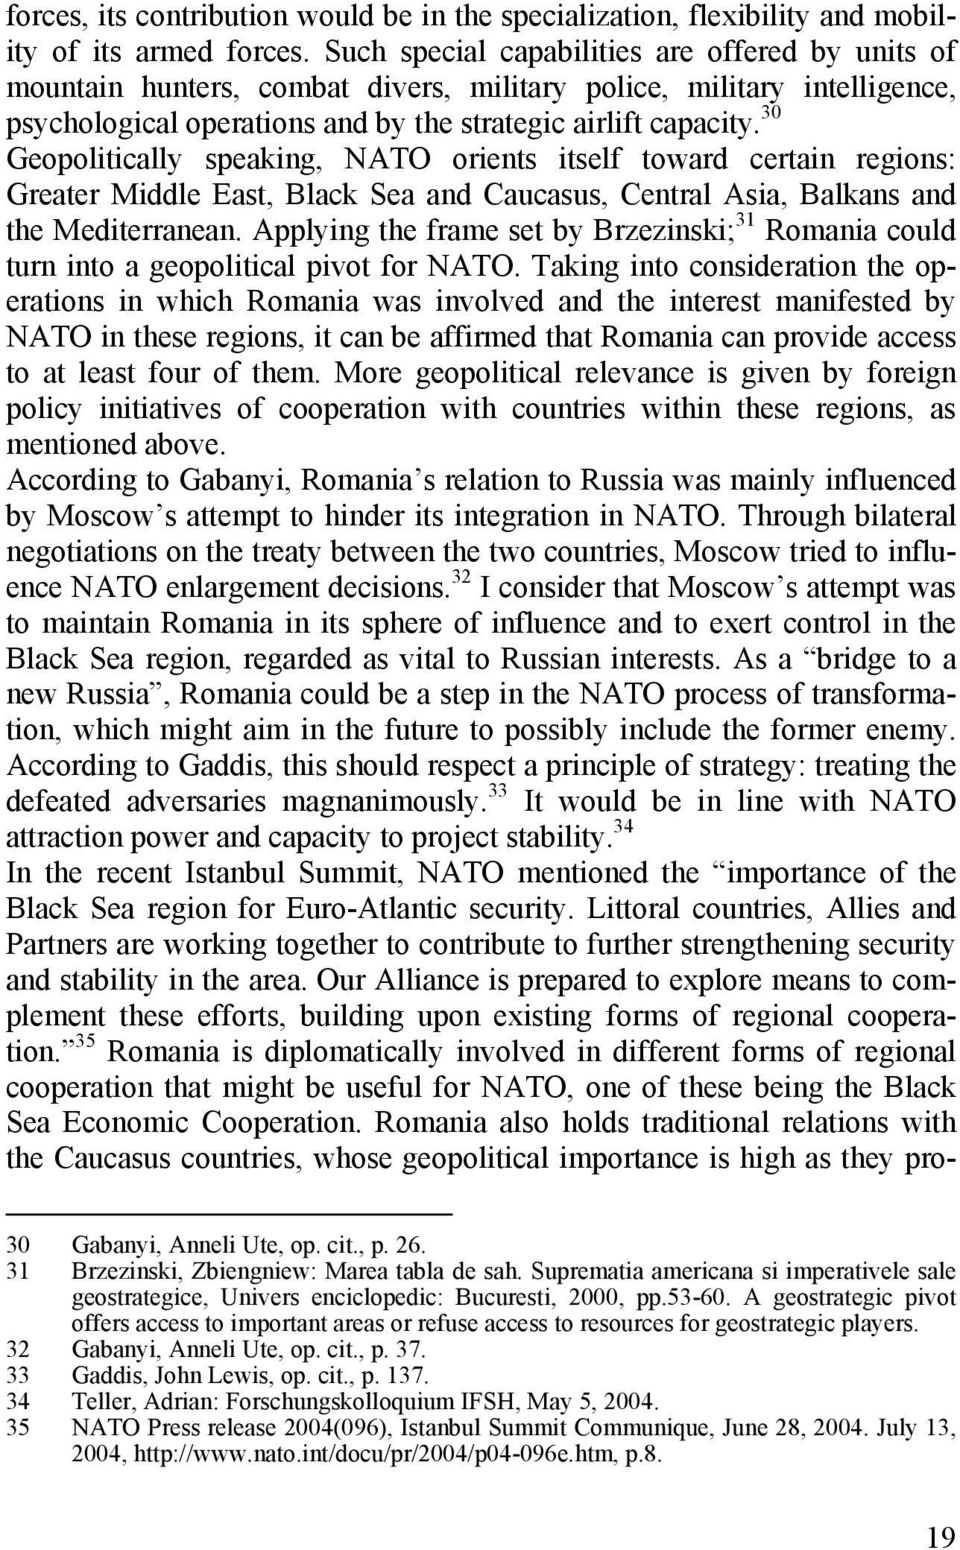 30 Geopolitically speaking, NATO orients itself toward certain regions: Greater Middle East, Black Sea and Caucasus, Central Asia, Balkans and the Mediterranean.